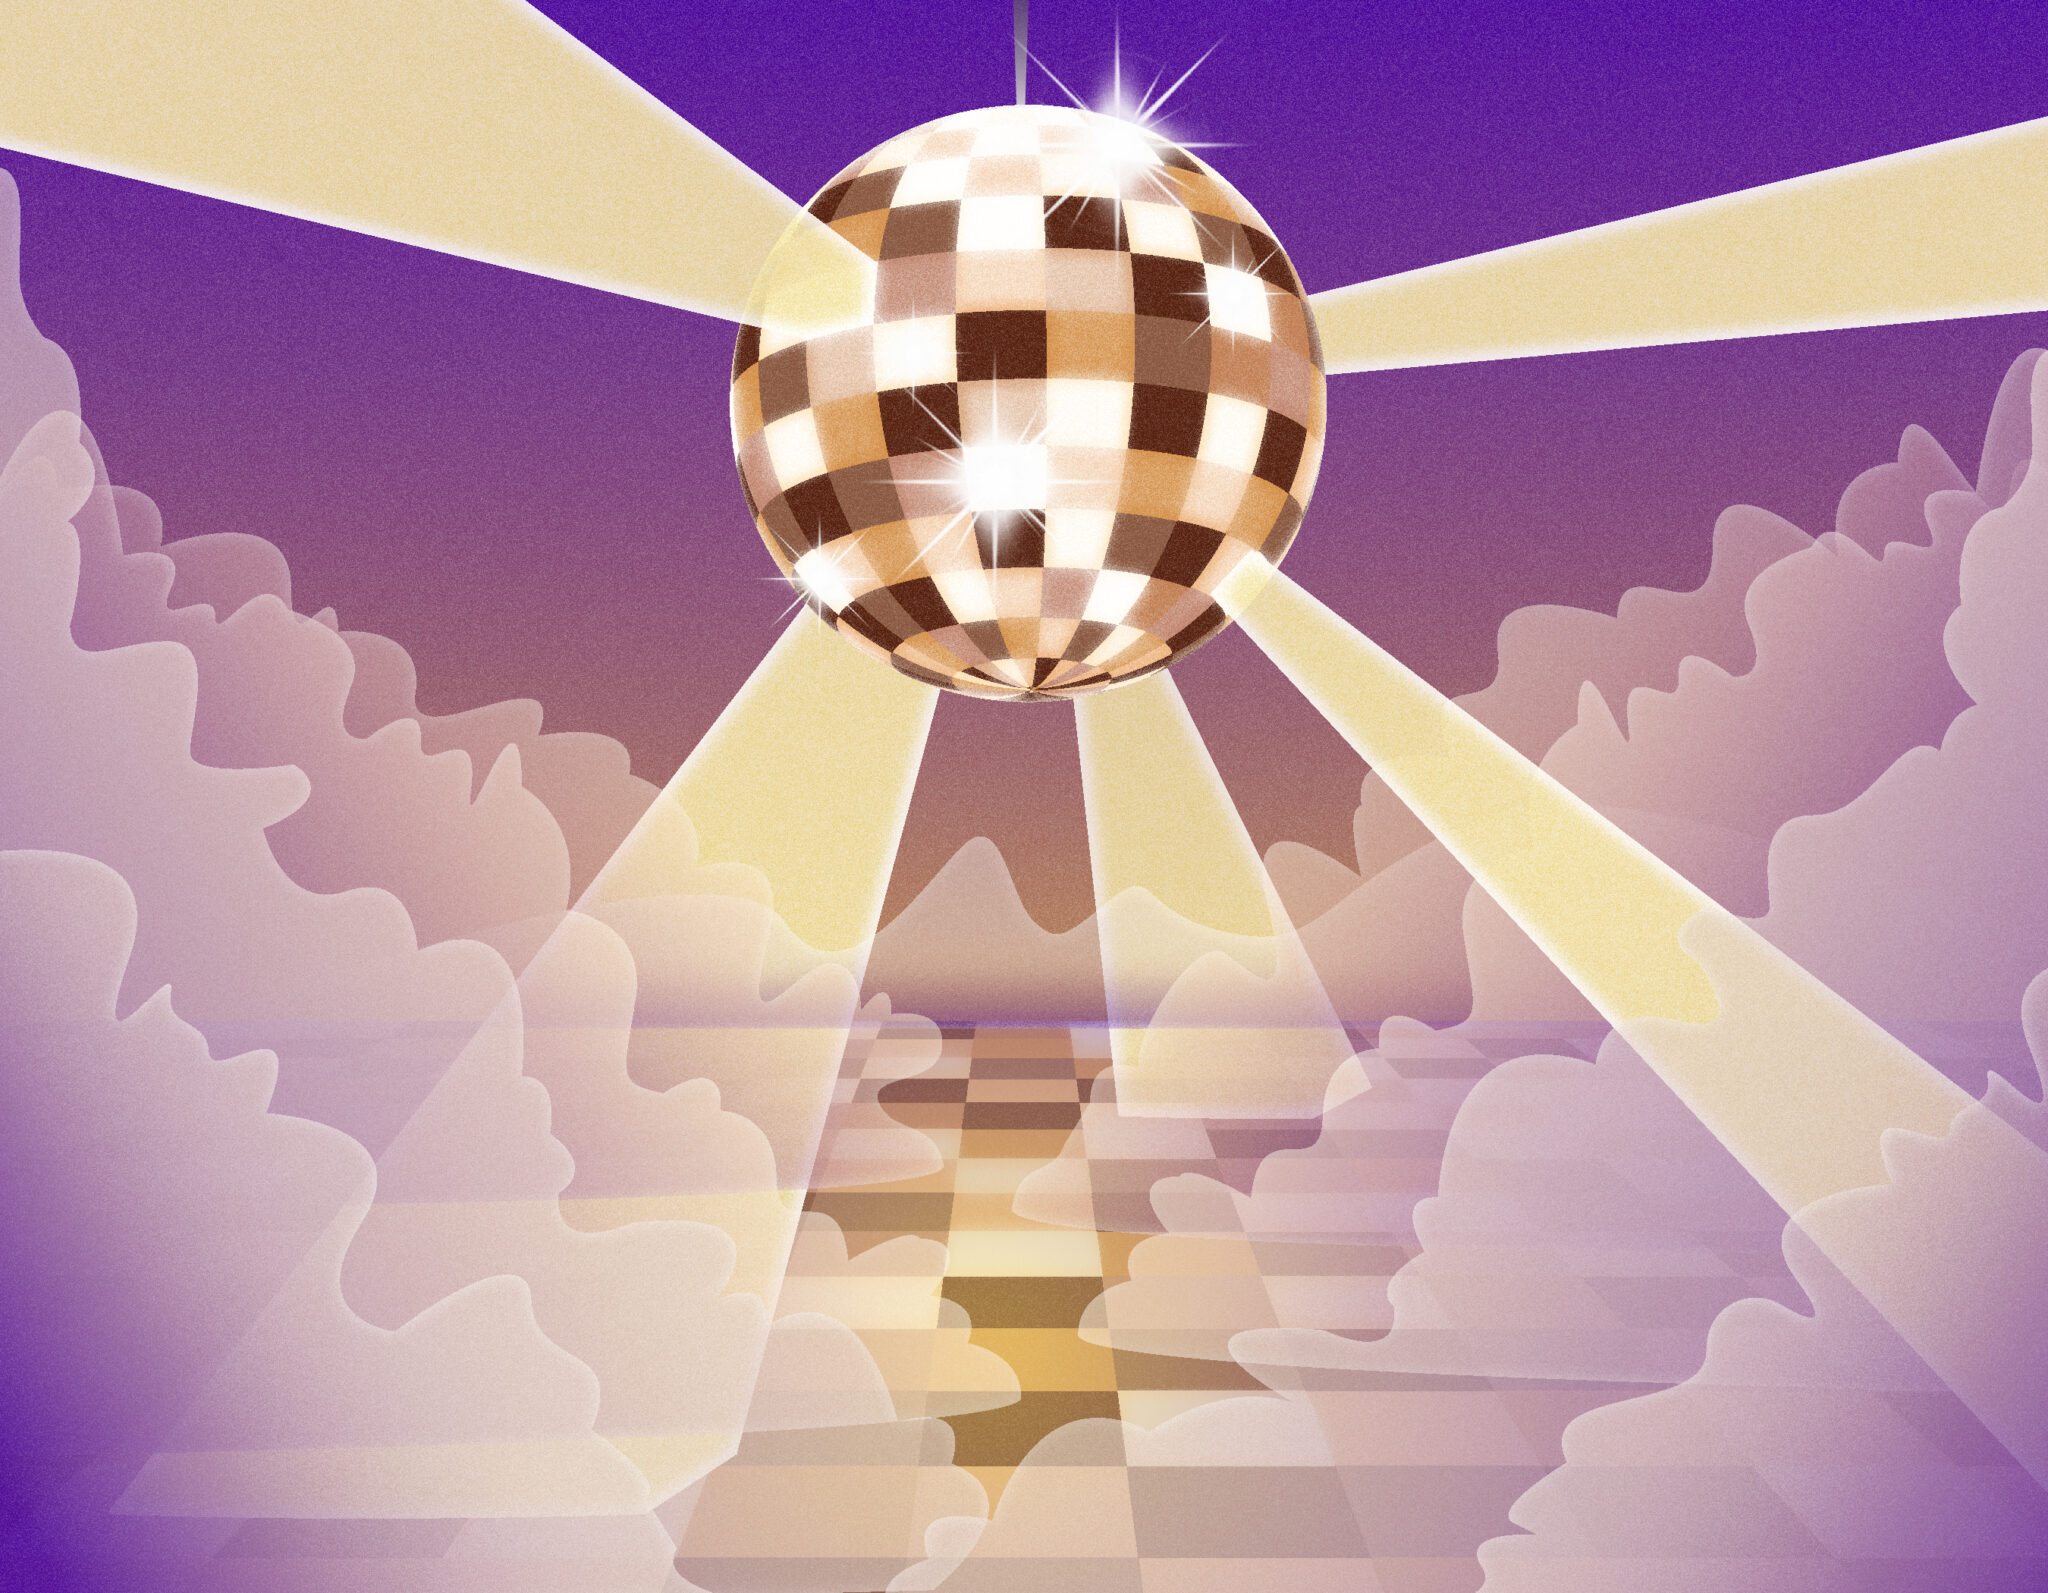 Illustration of a disco ball shining in the clouds, above a dance floor. The ball is composed of various skin tones.